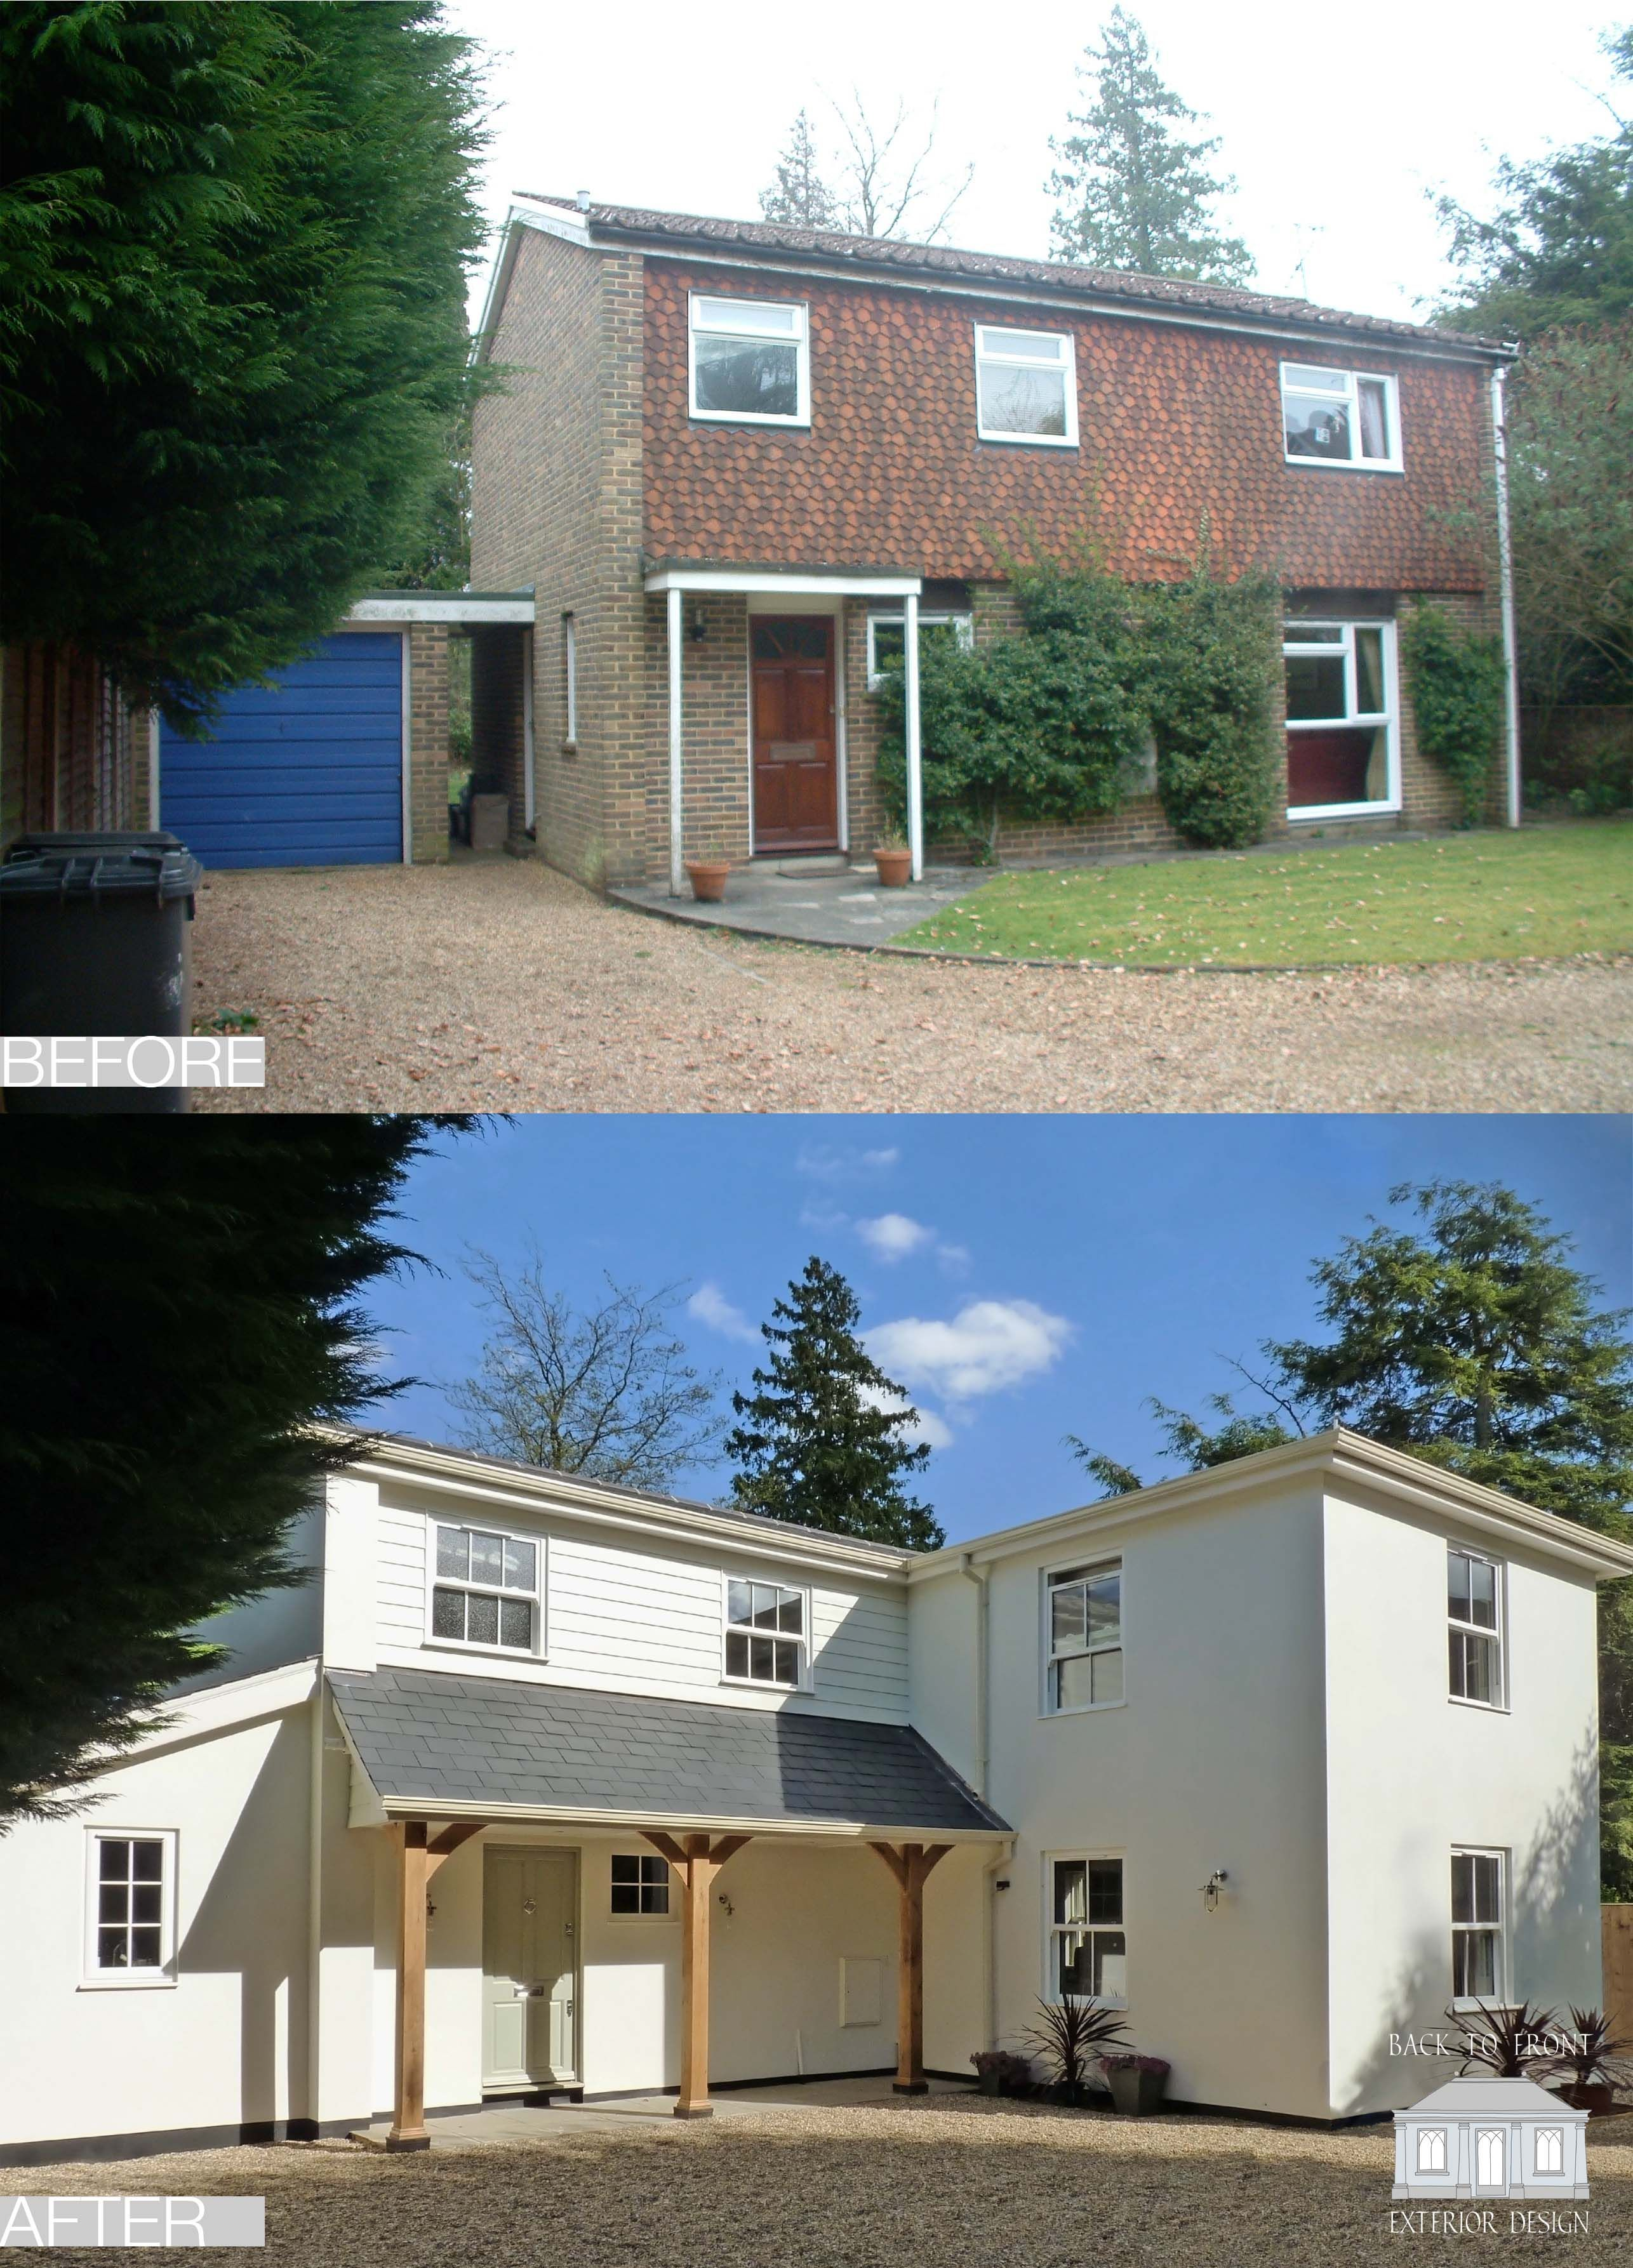 1960 S Remodelling Project Featured On Sarah Beeny S Double Your House For Half The Money In 2012 A Compl House Cladding Facade House Home Exterior Makeover